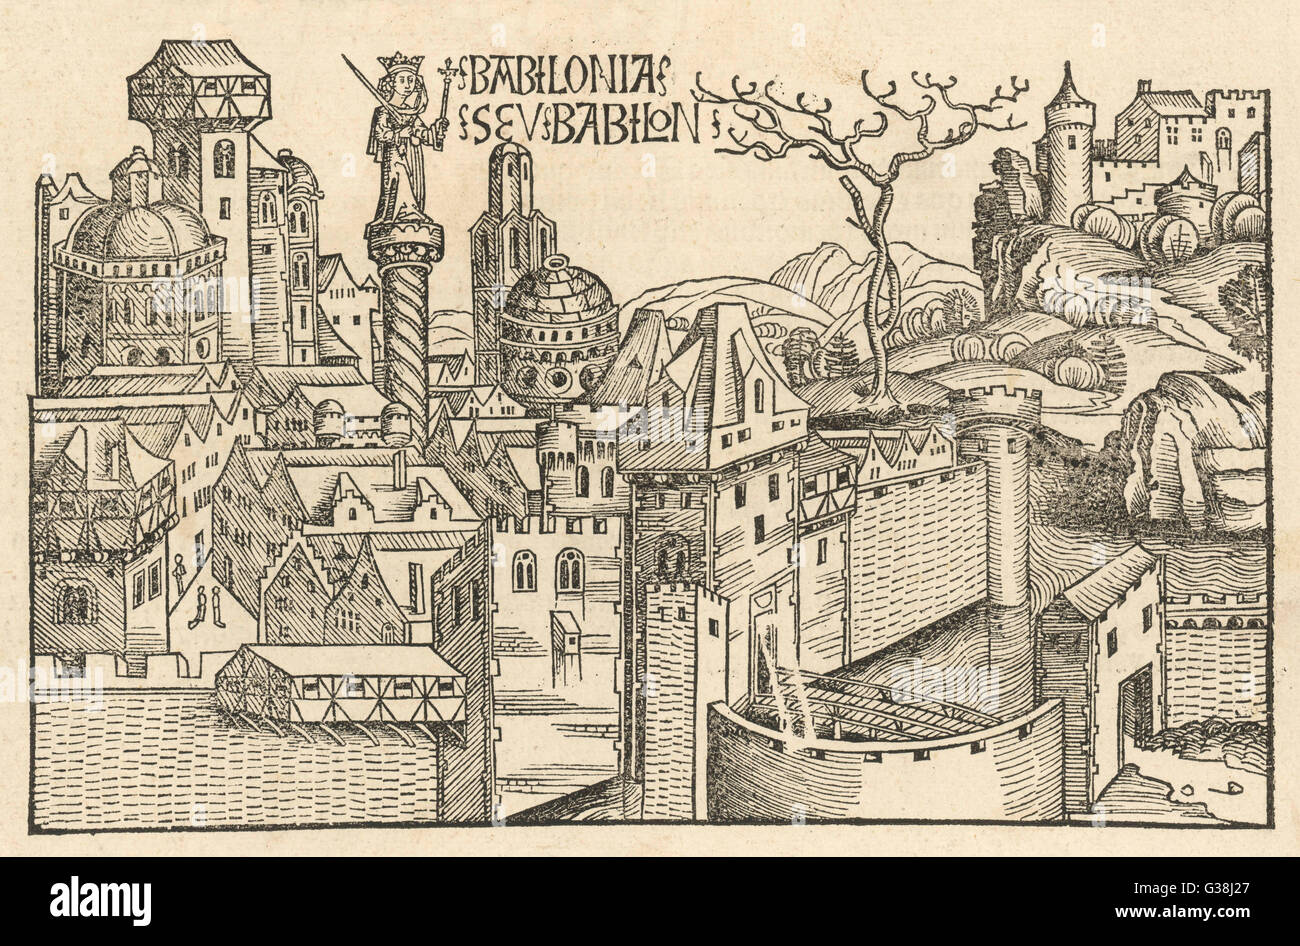 A 15th century, German view of  what Babylon may have looked  like.        Date: 1485 Stock Photo